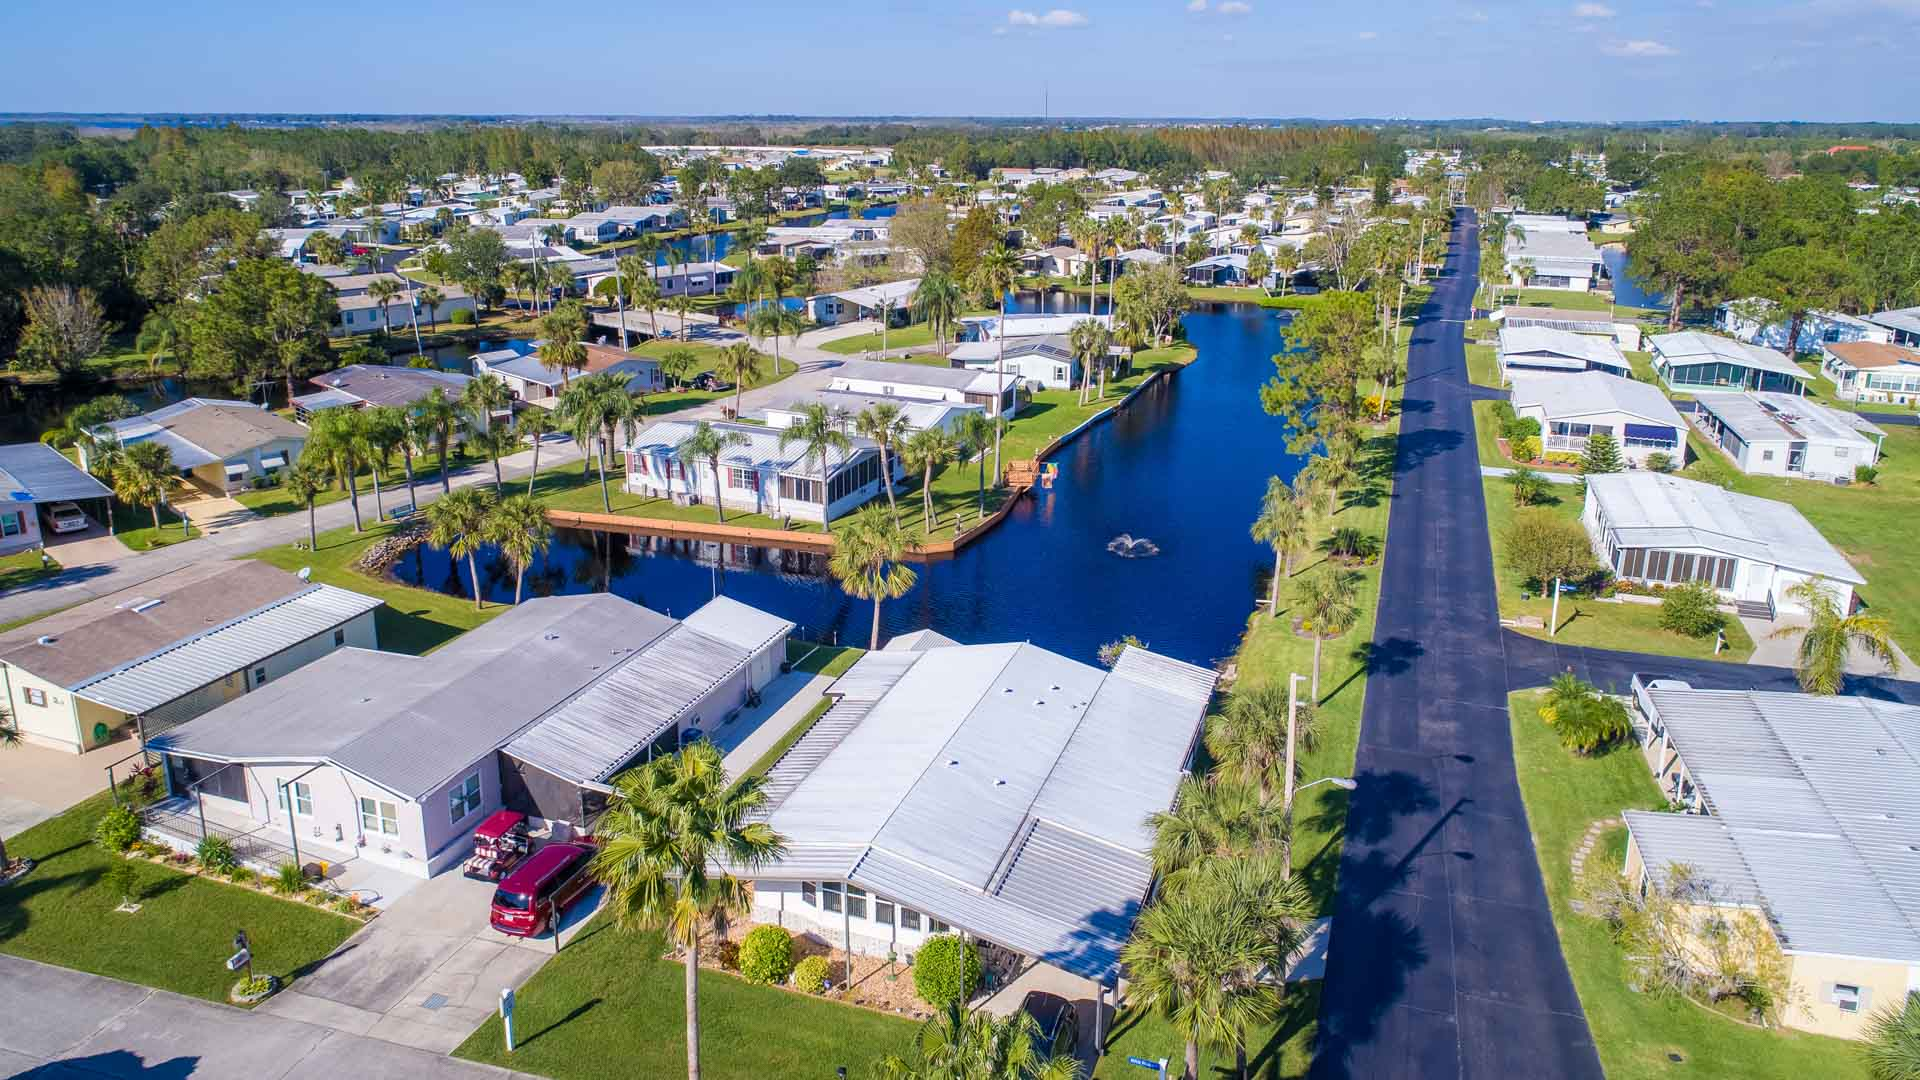 Royal Palm Village 55+ Manufactured Homes Community Aerial View in Haines City, FL